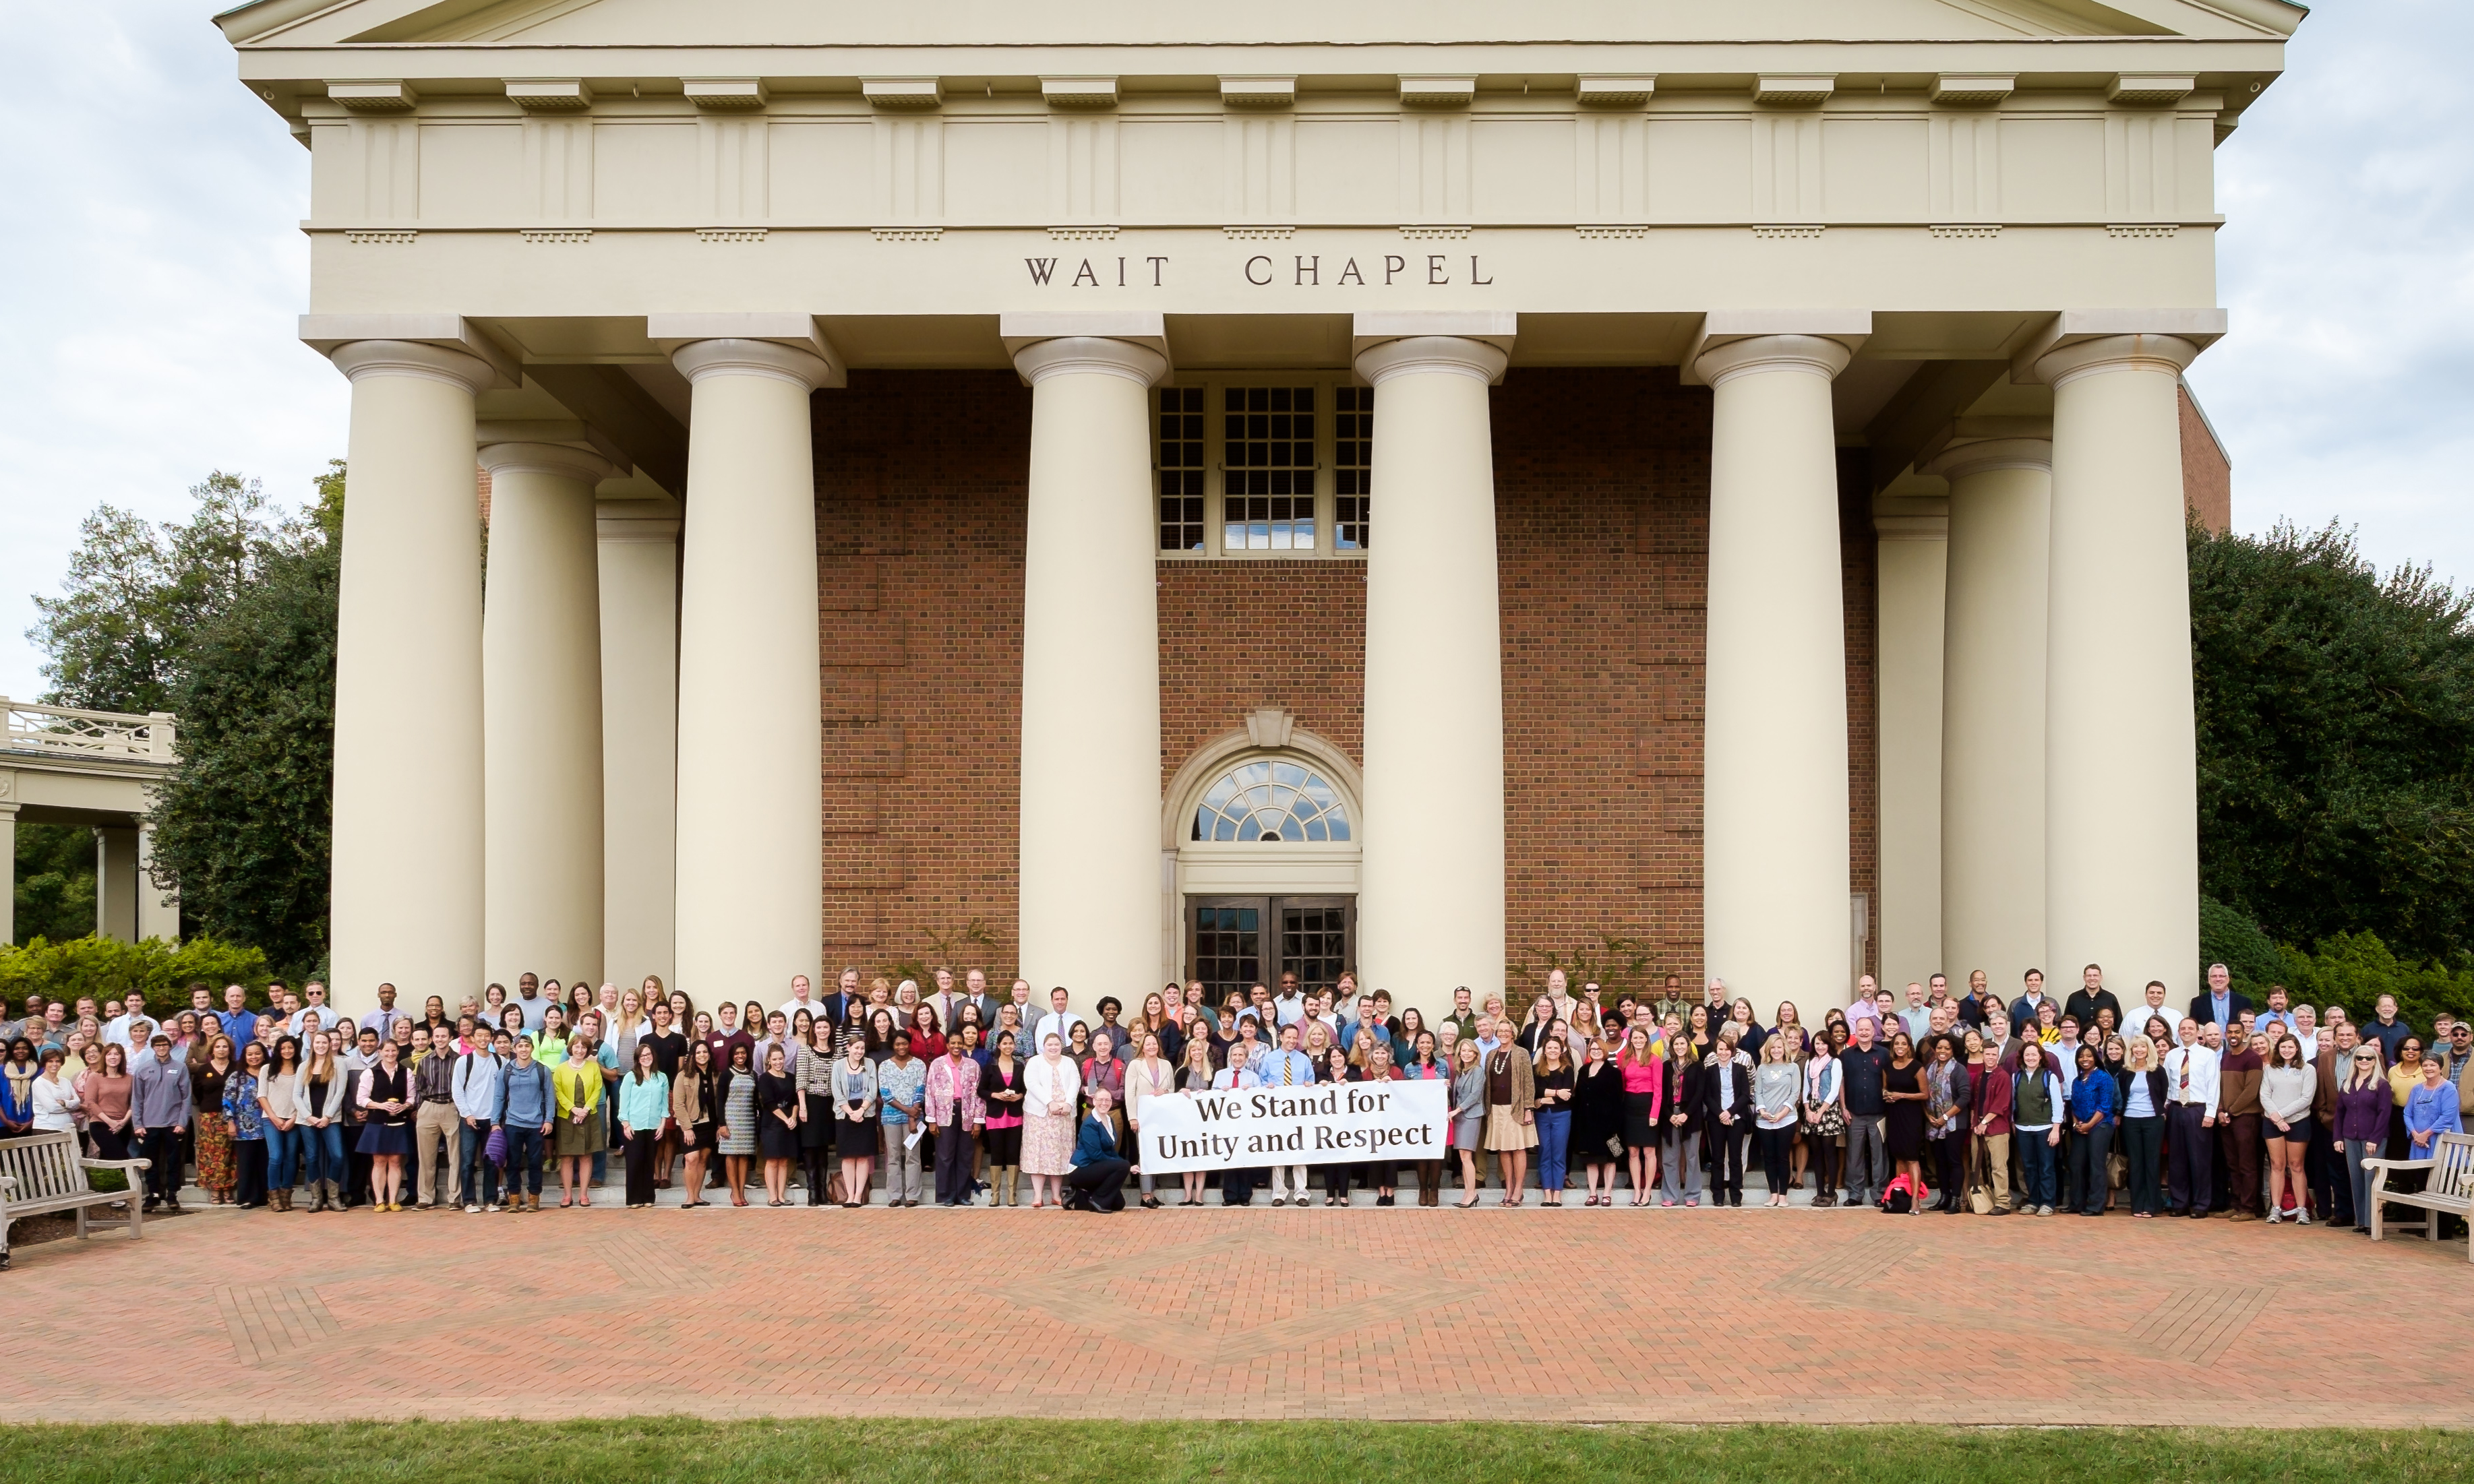 Wait Chapel, We Stand for Unity and Respect